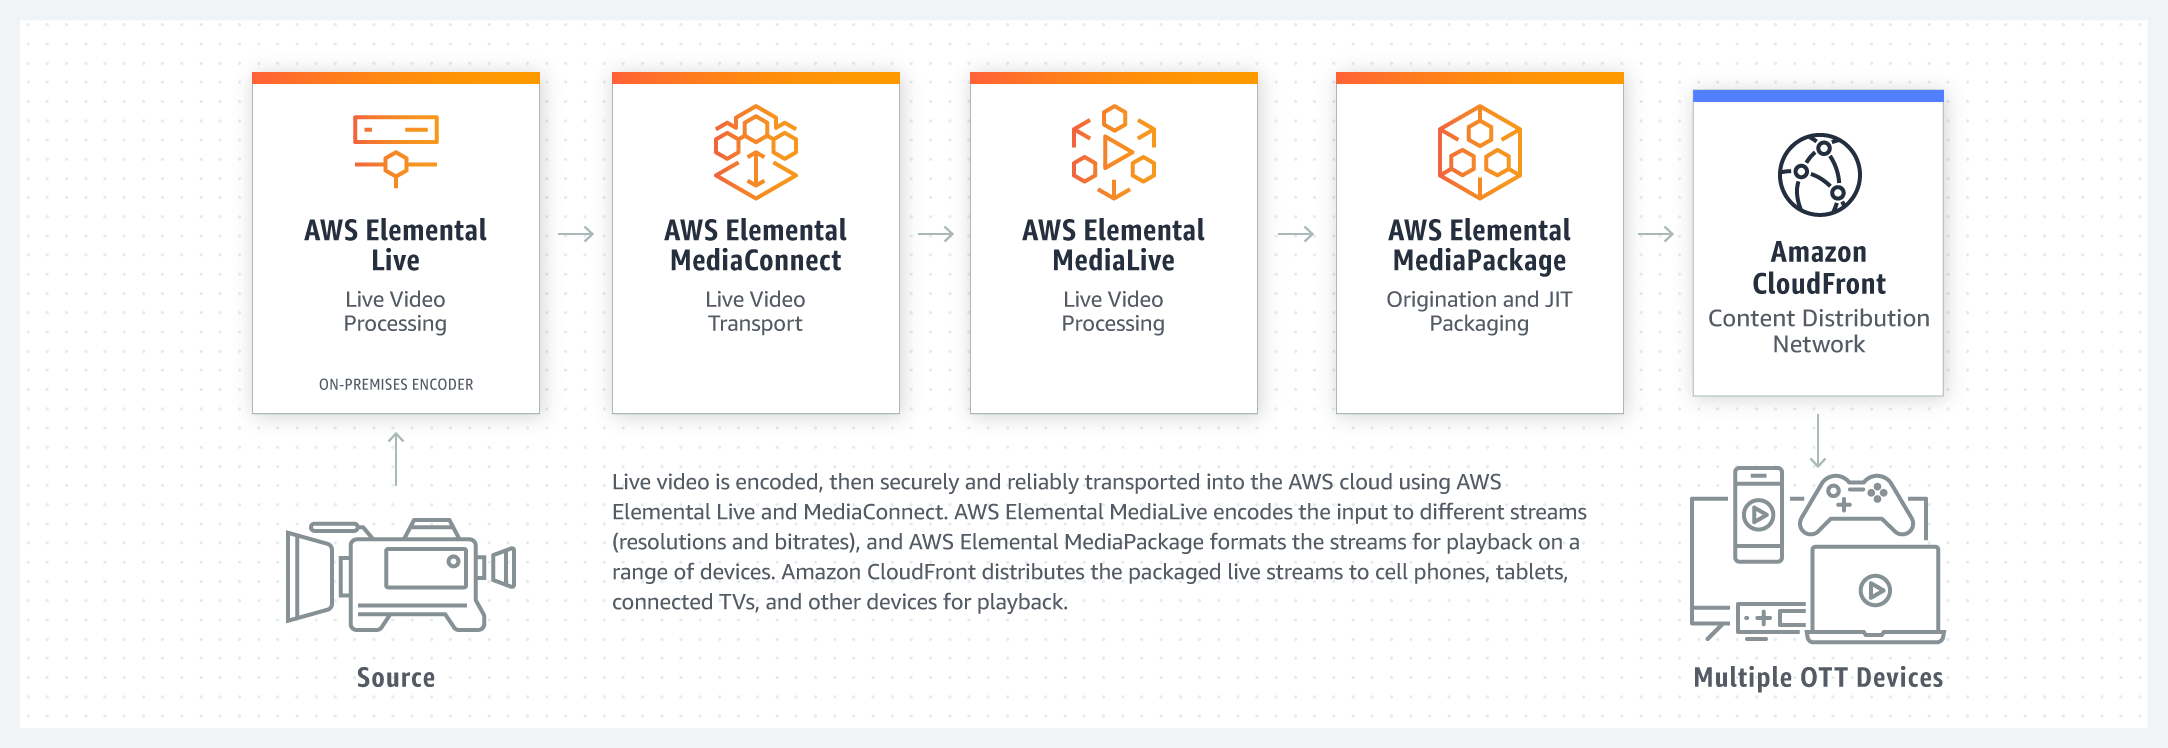 product-page-diagram_AWS_Elemental_r06_MEDIA_SERVICES_@2x